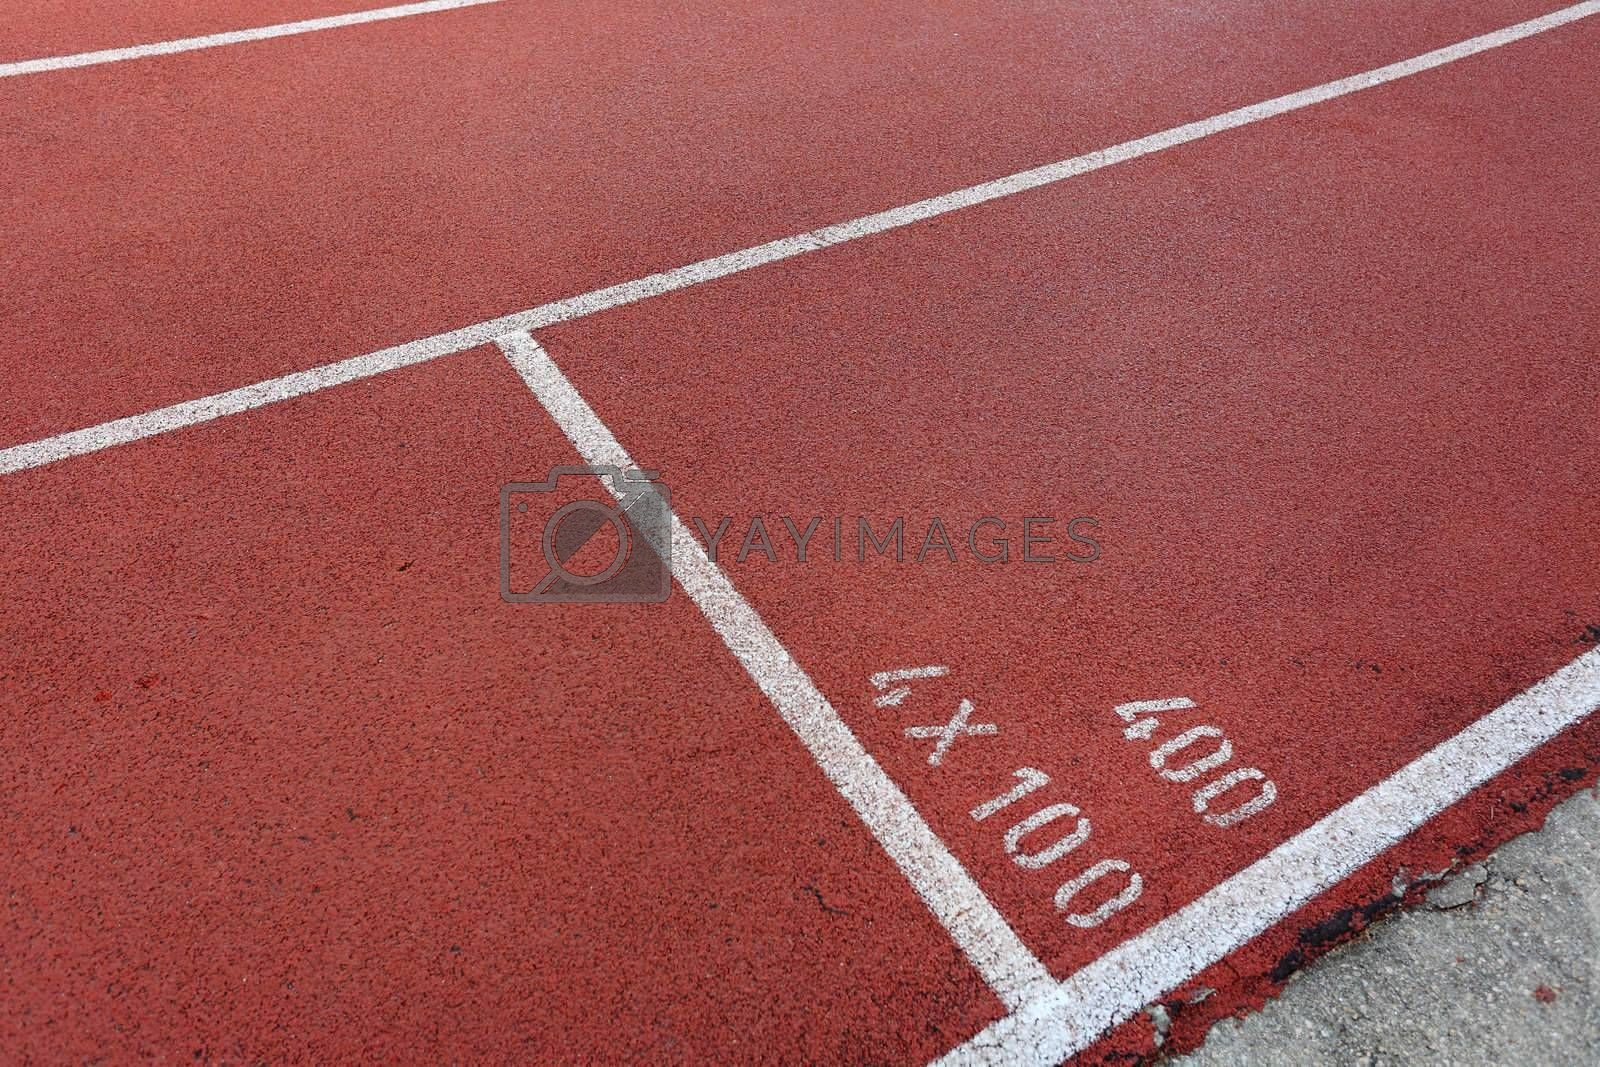 Royalty free image of start point on running track by leungchopan